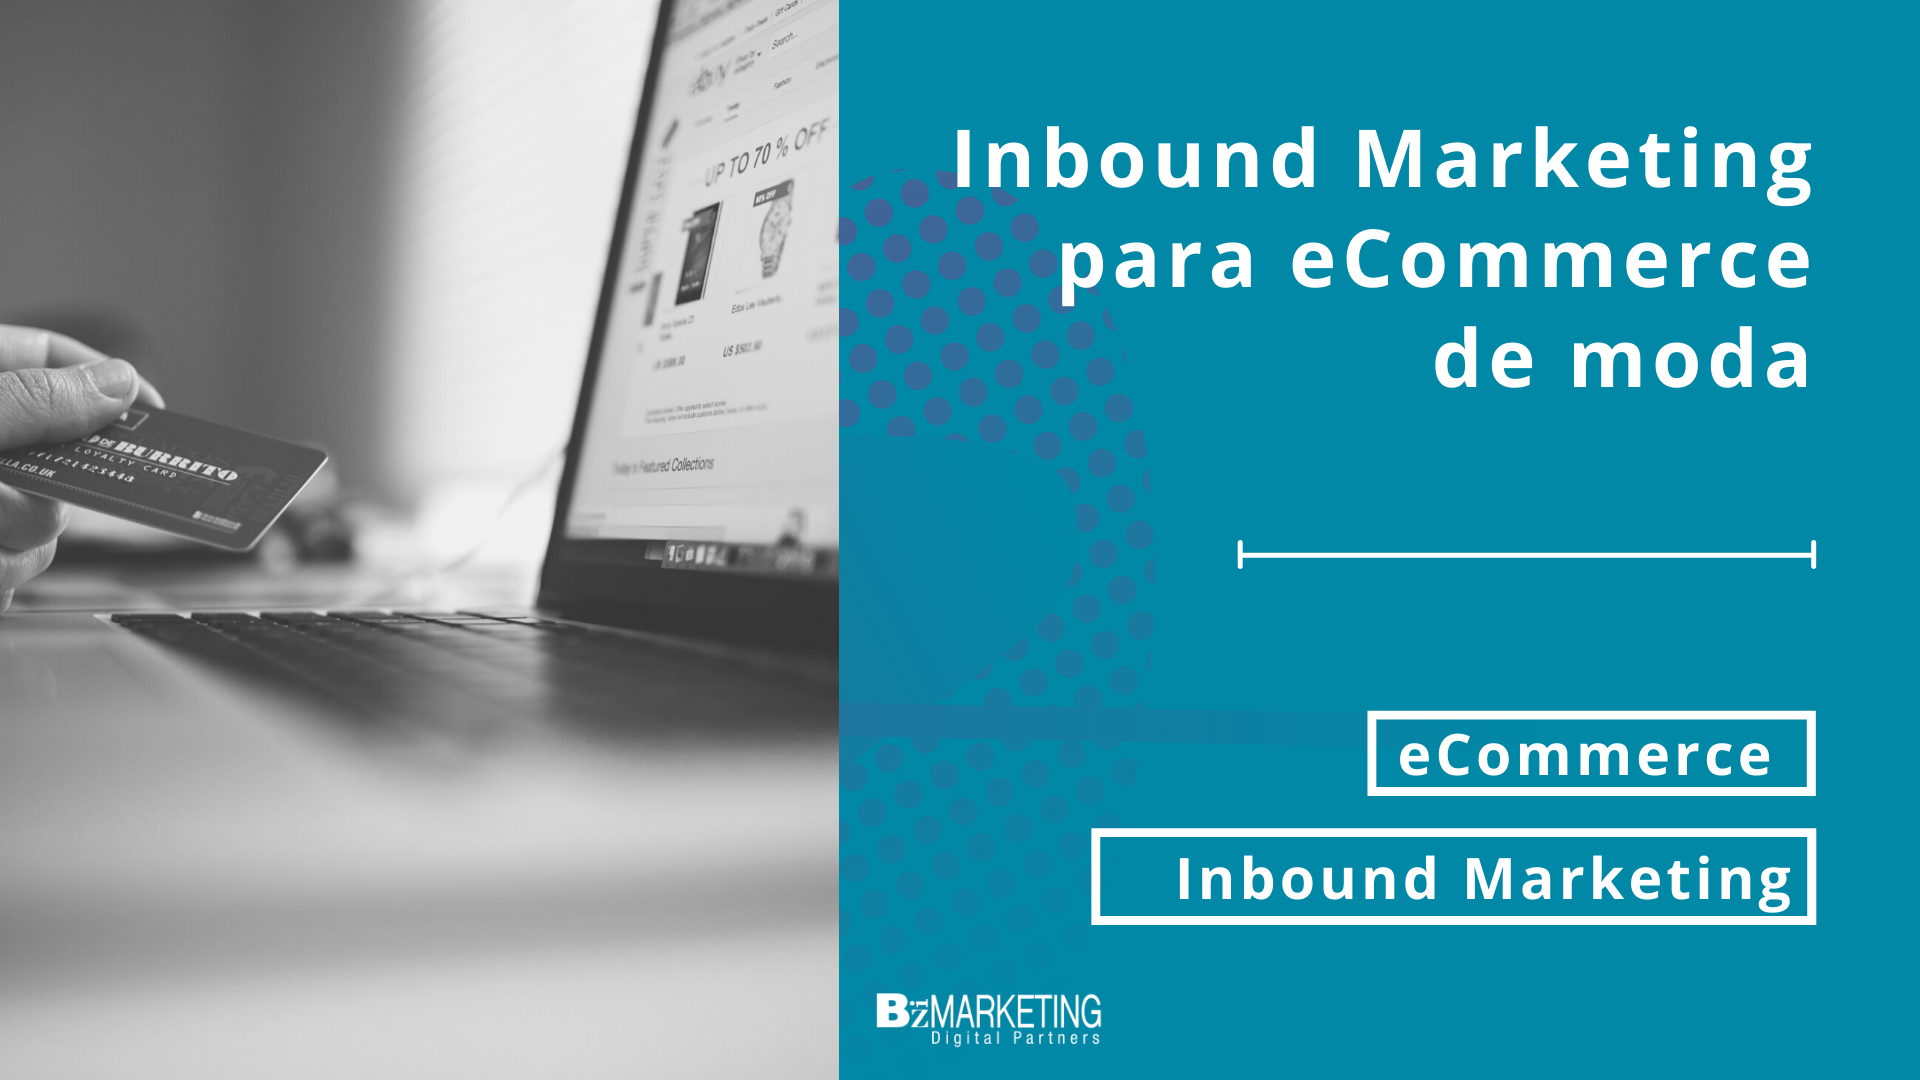 Inbound Marketing para eCommerce de moda. Marketing digital especialista en Girona BizMarketing